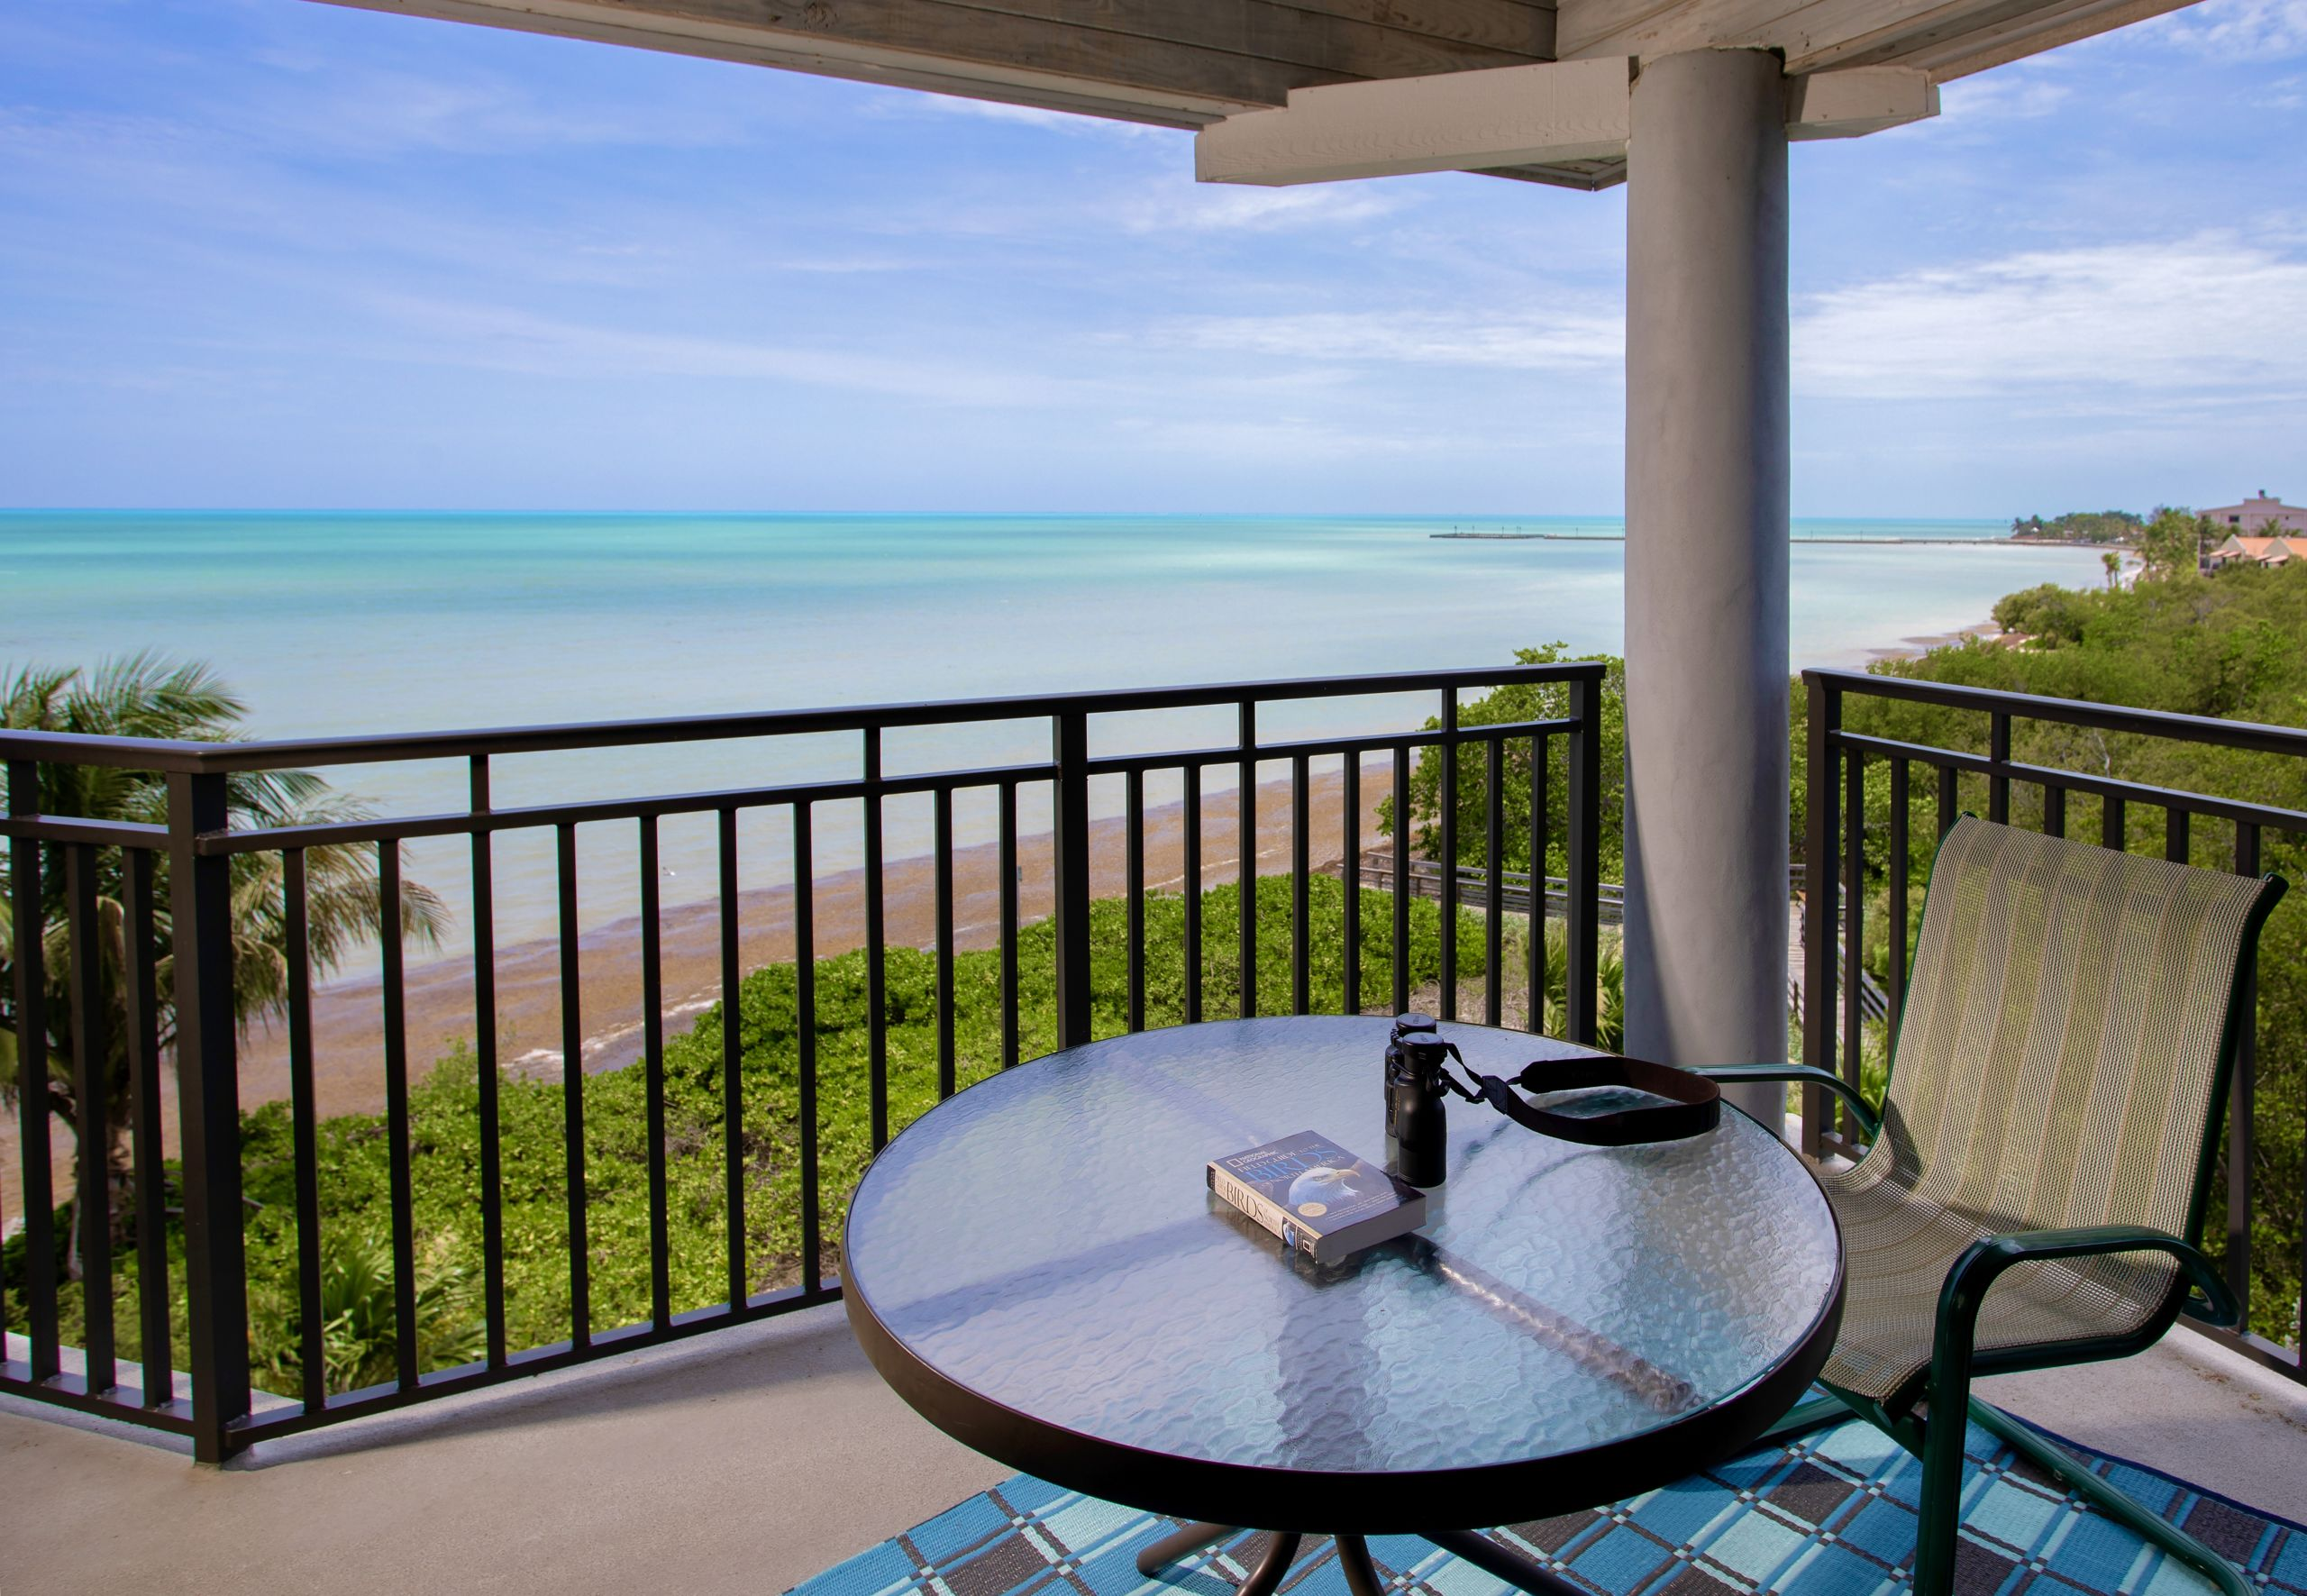 Best Ocean View, 1800 Atlantic Blvd., A400., Key West